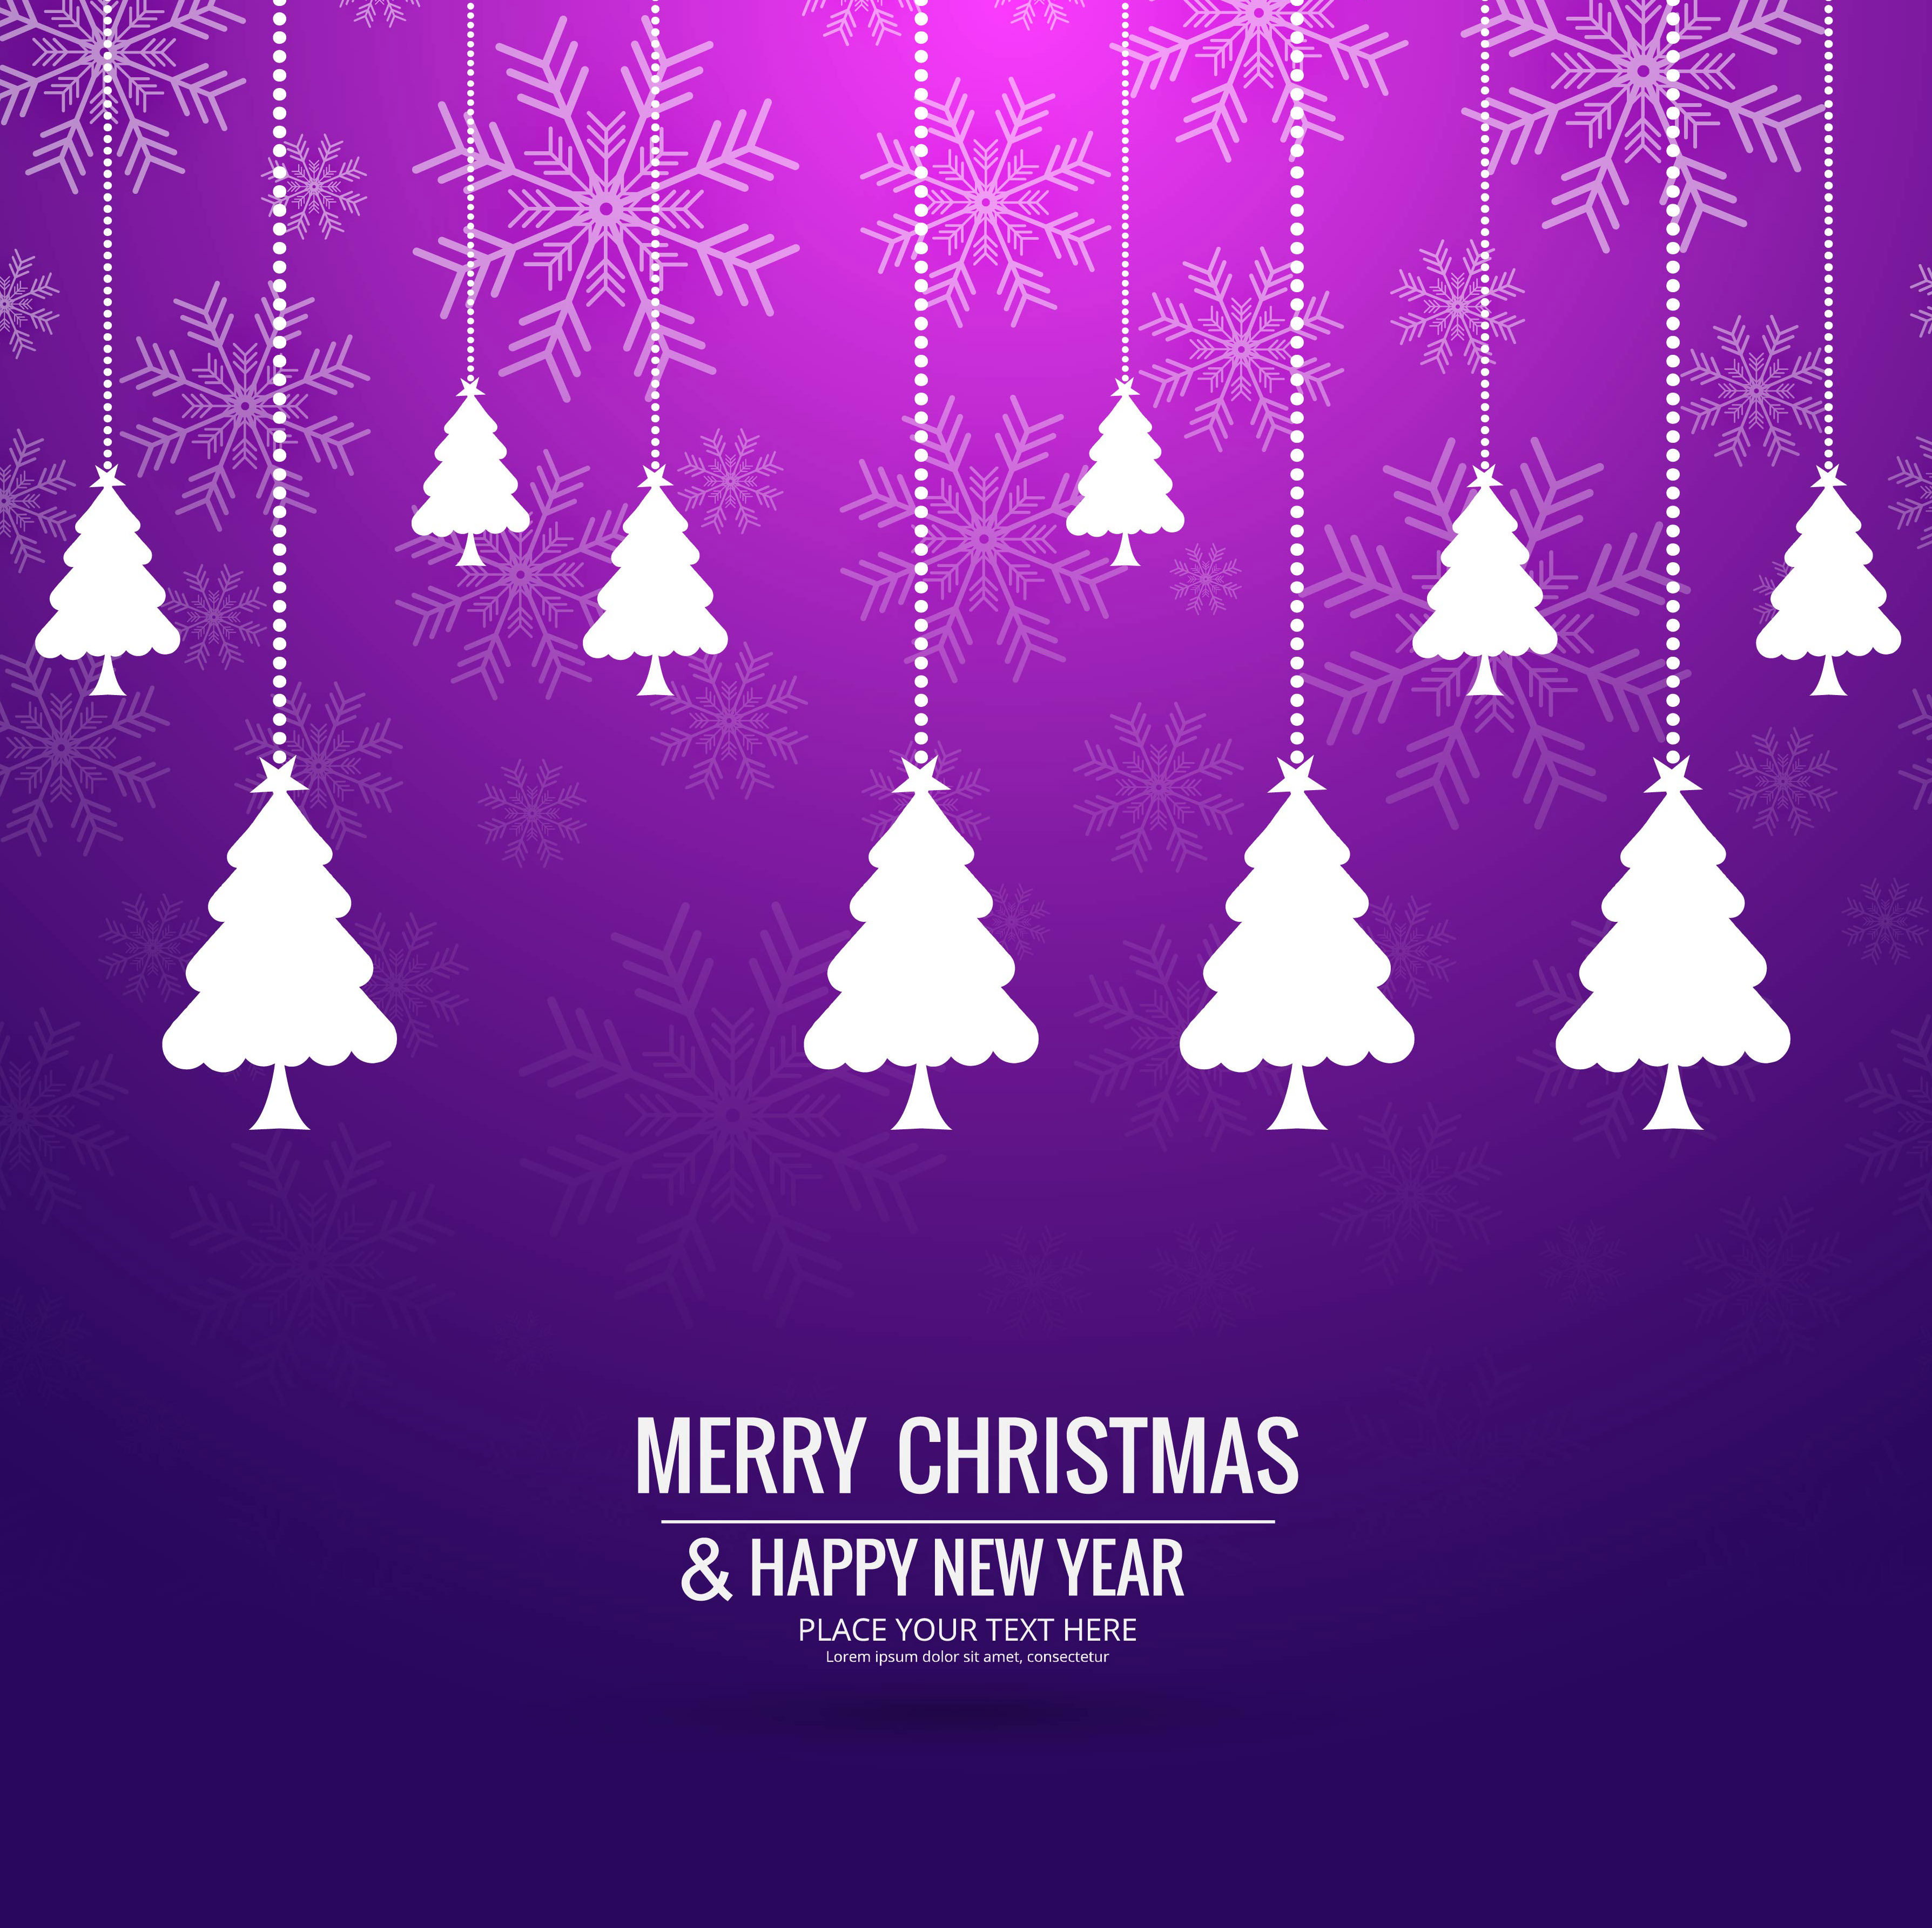 Modern Mery Christmas Background Download Free Vector